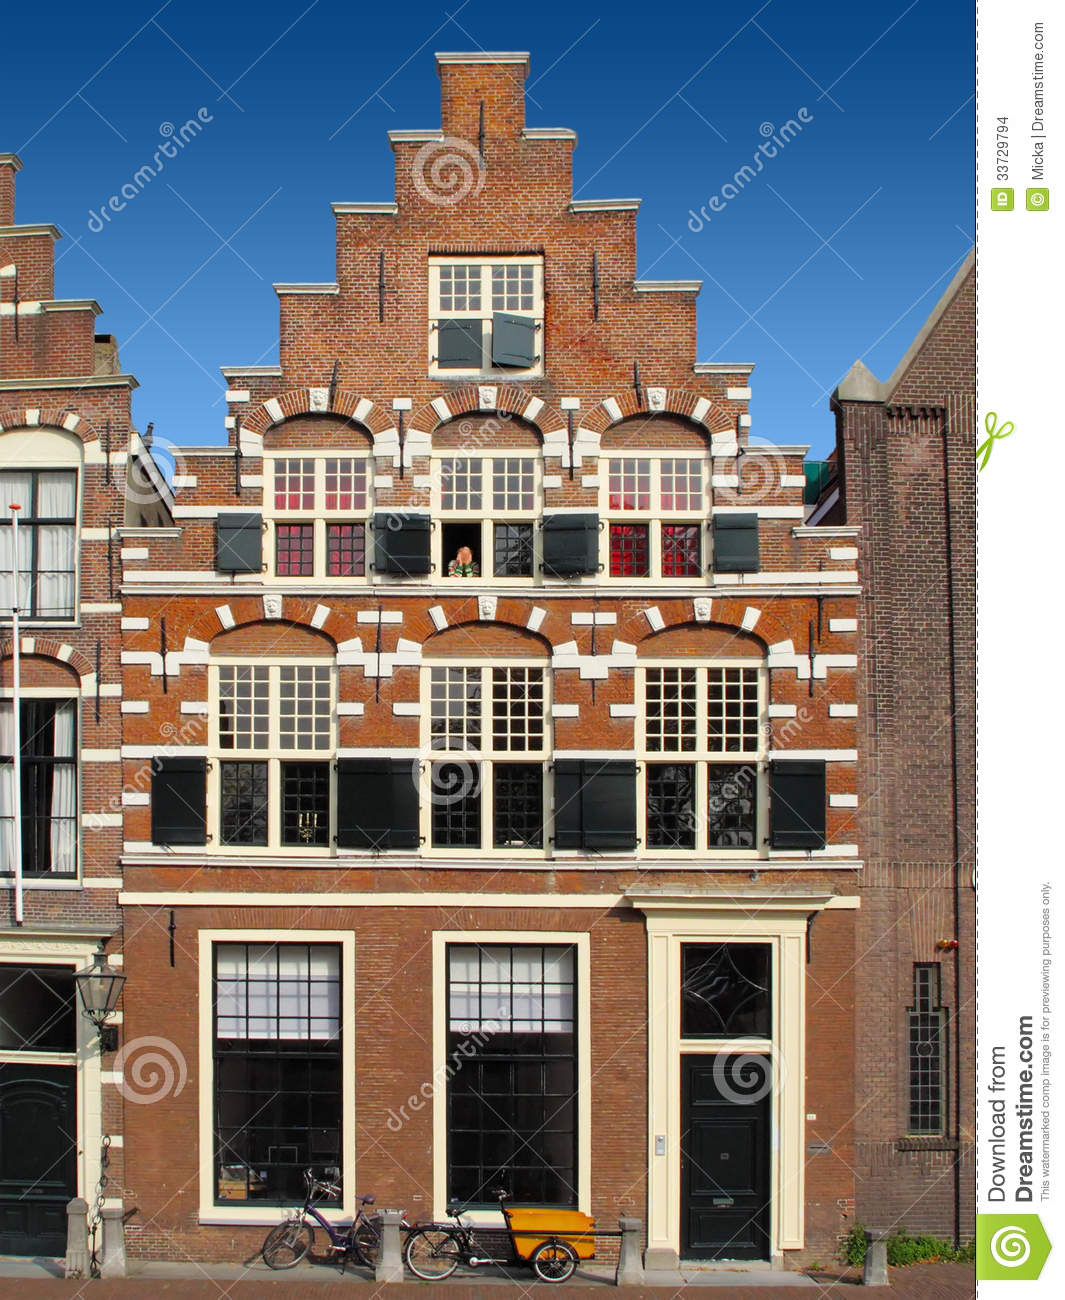 Traditional dutch house stock images image 33729794 for Dutch house